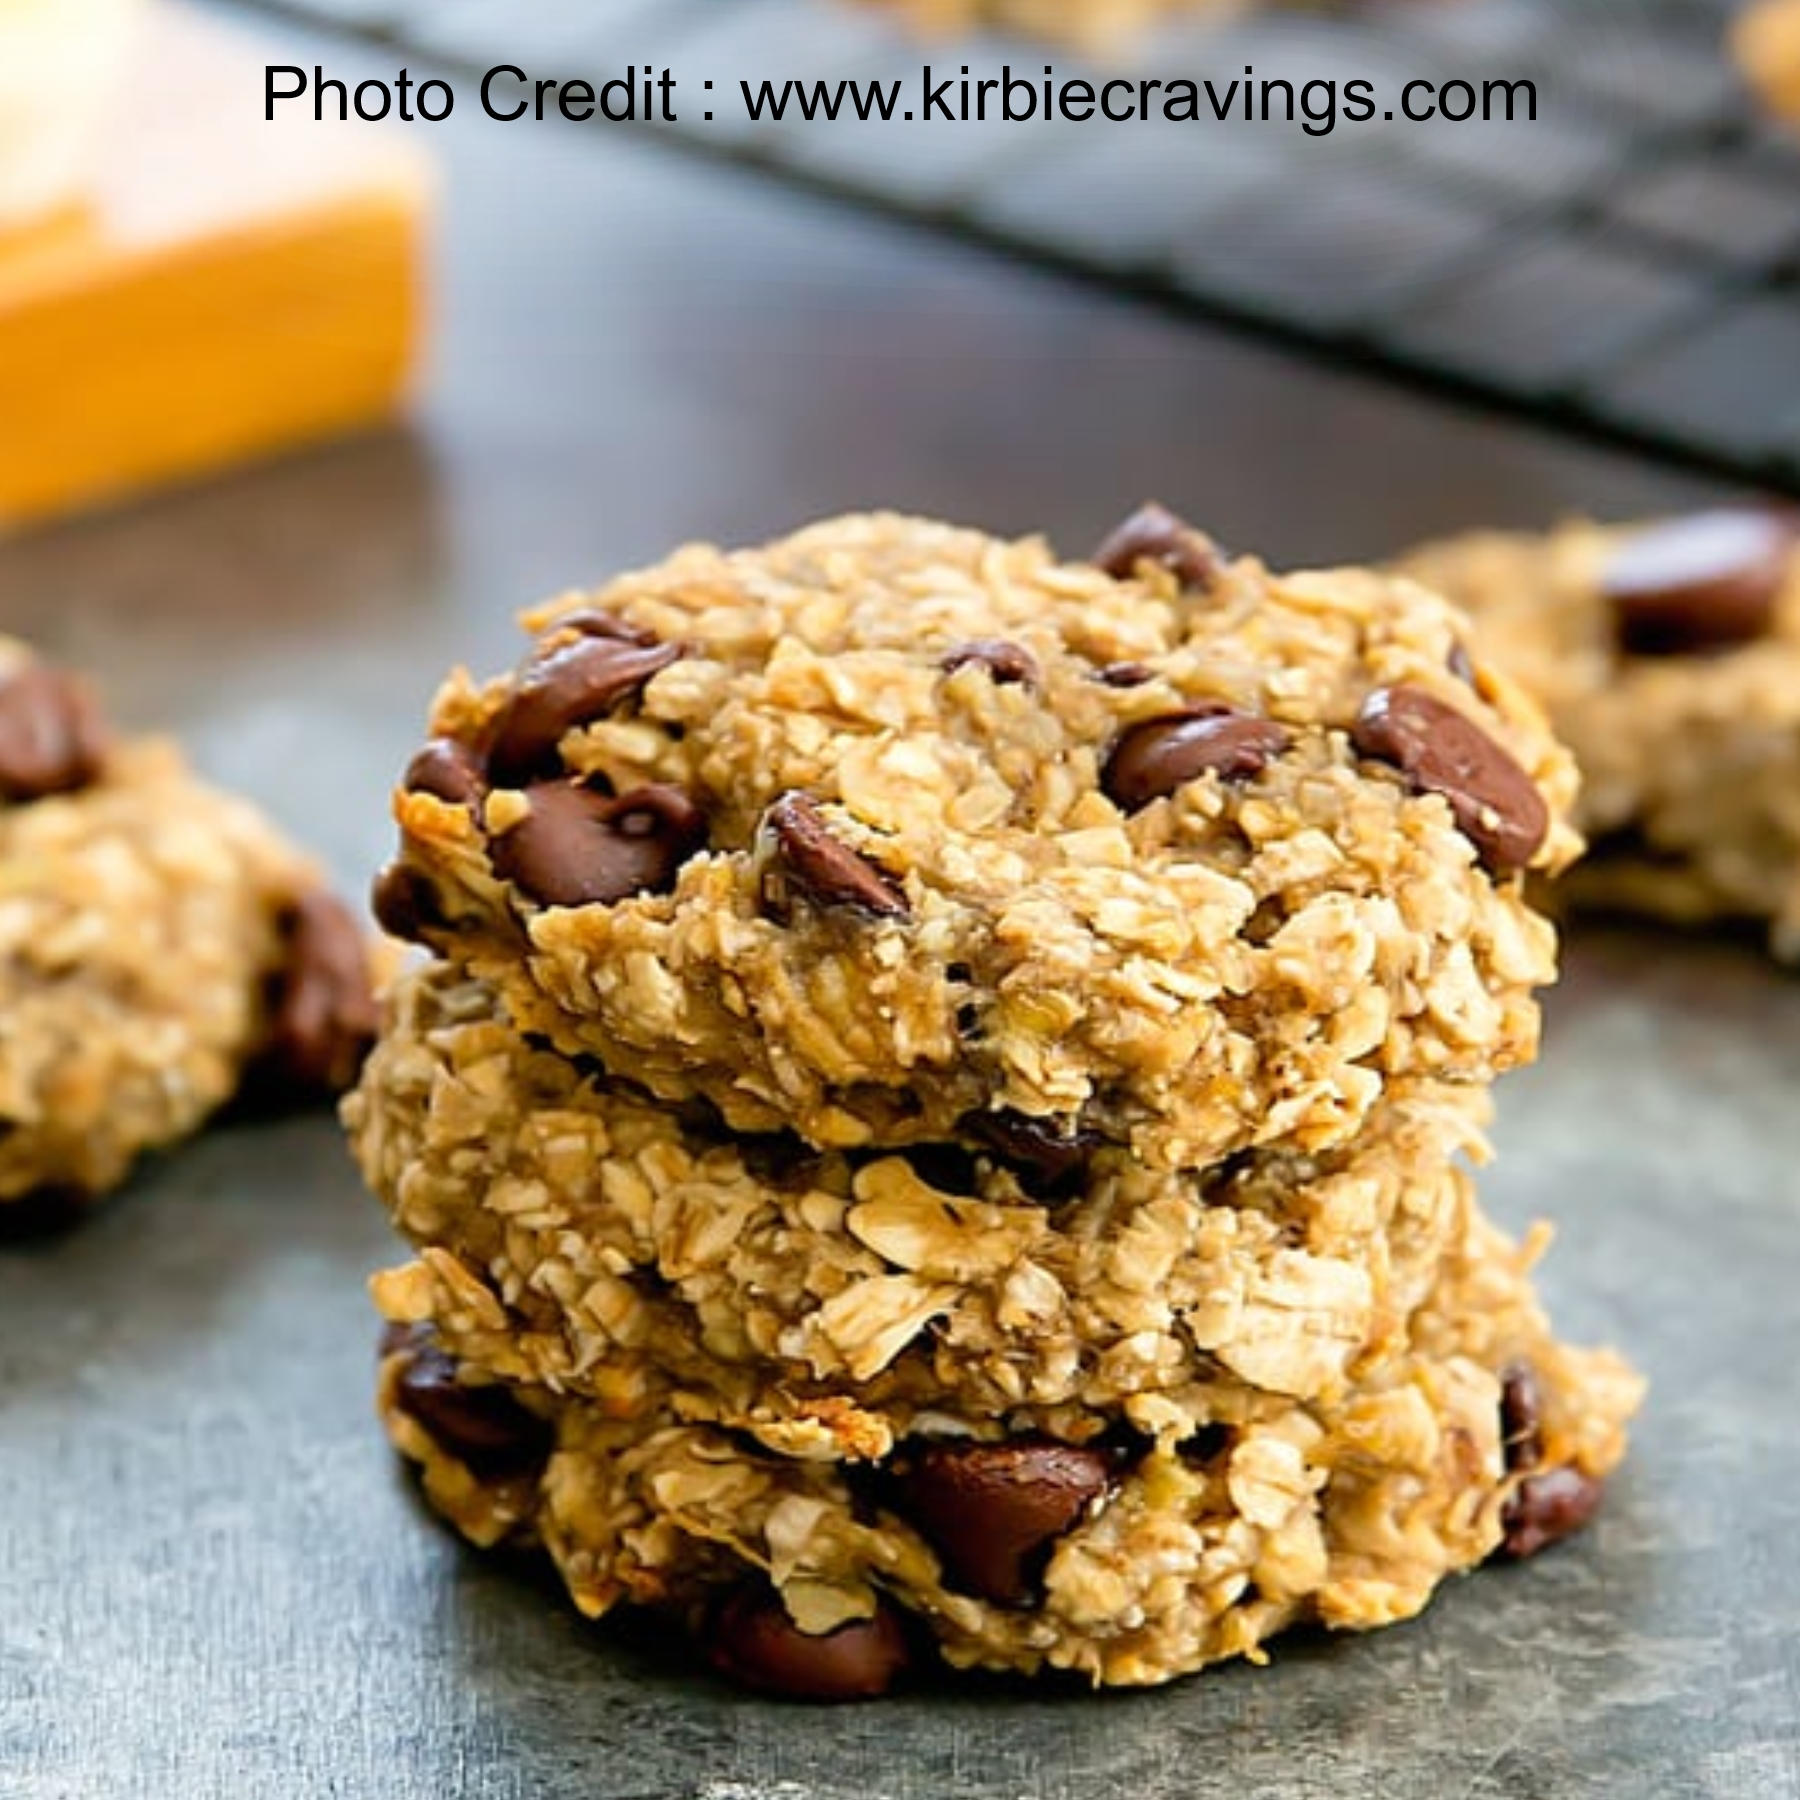 Two (Well Three Really) Ingredient Banana Oatmeal Cookies from Kirbie Cravings